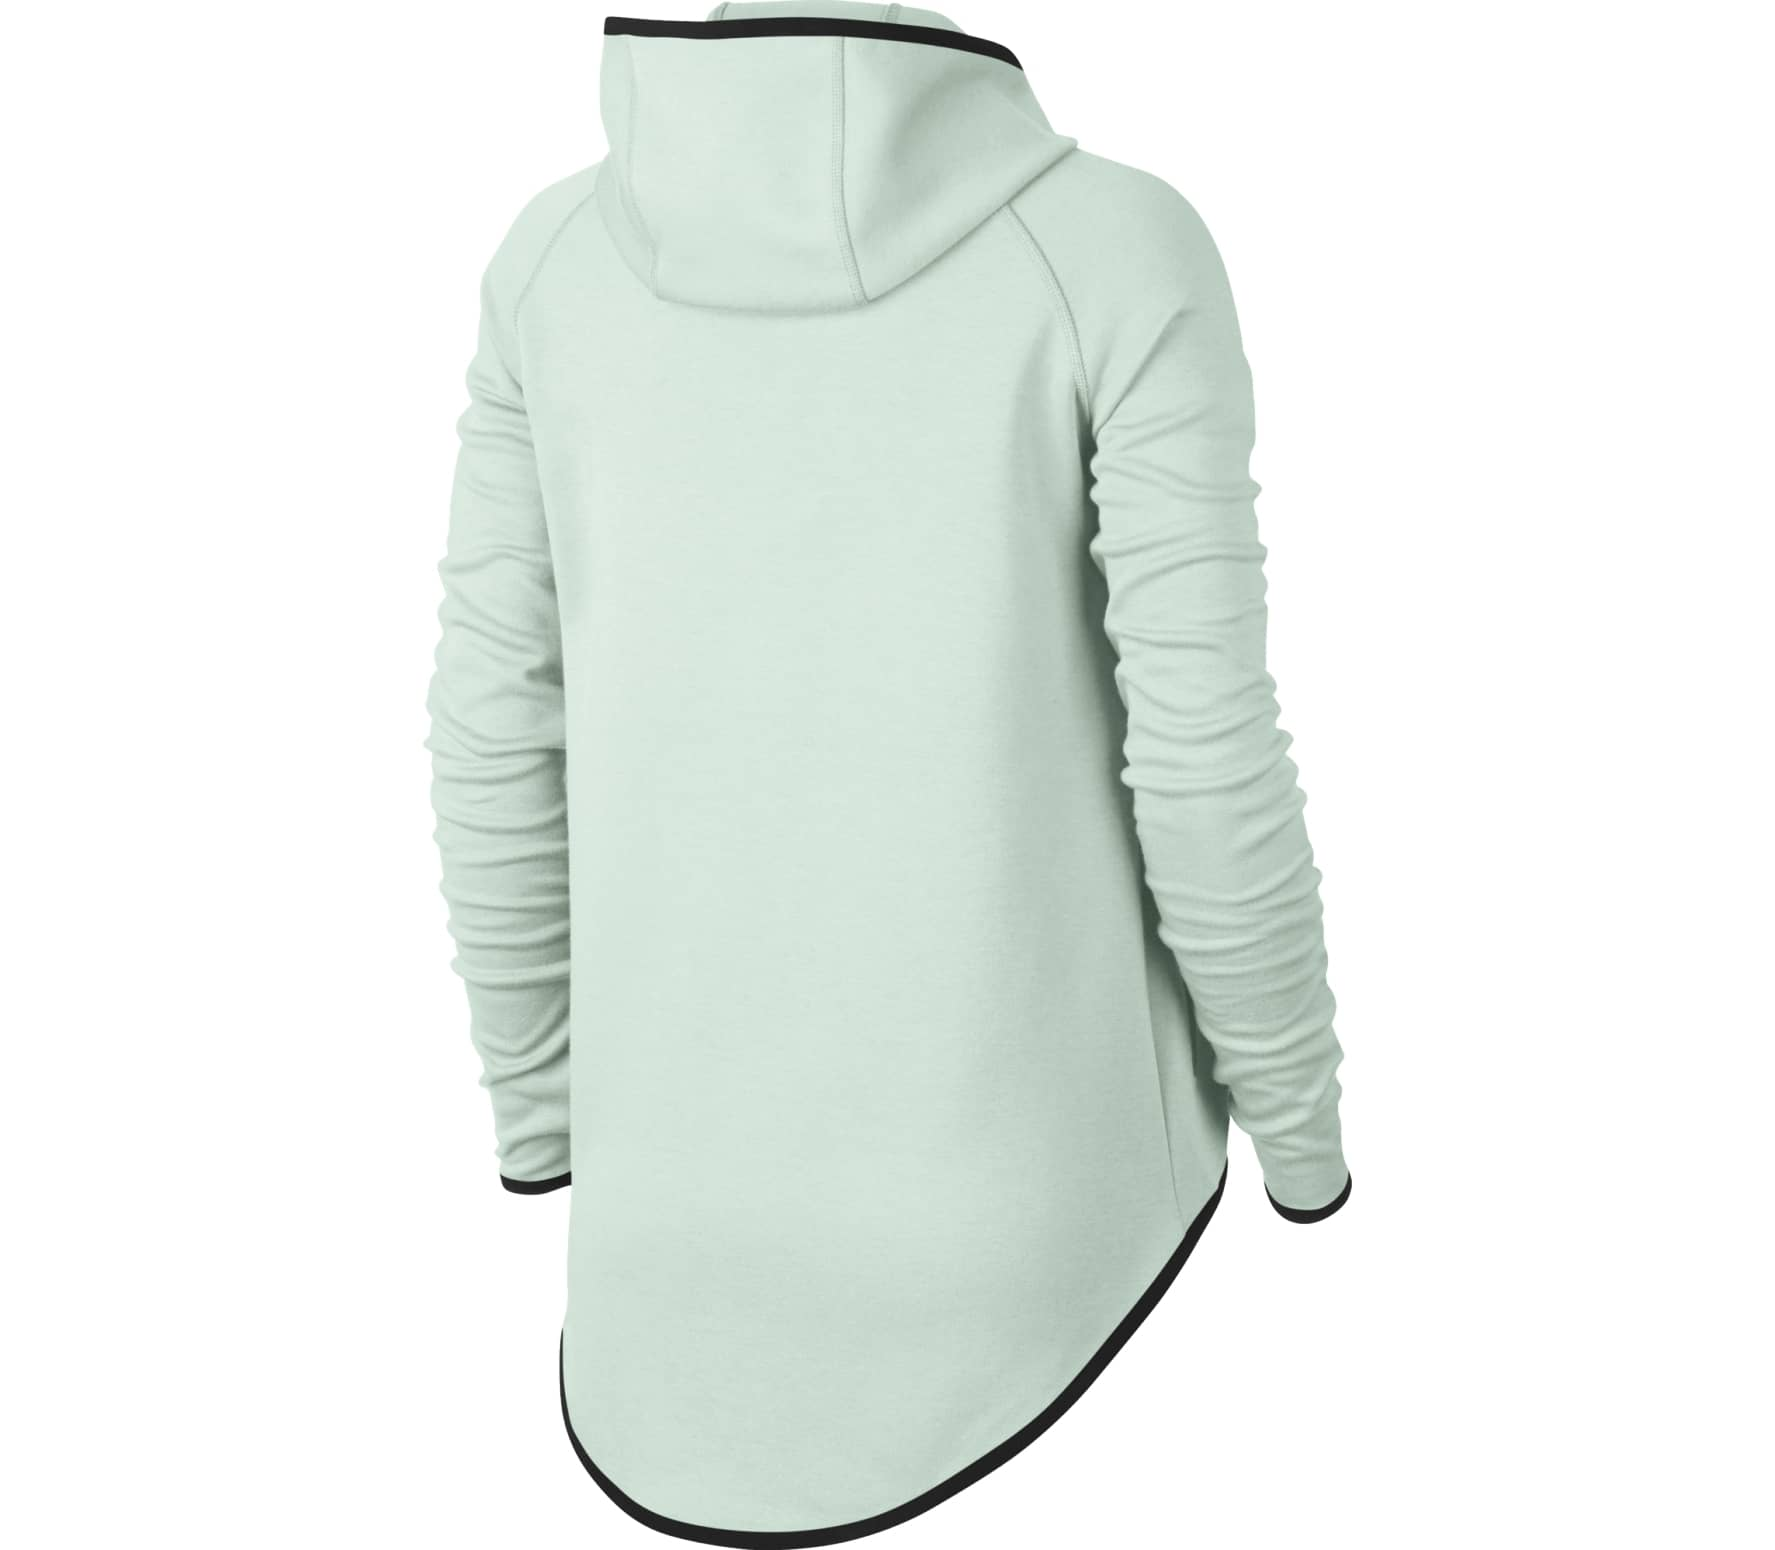 79676441da52 Nike - Sportswear Tech women s hooded fleece jacket (mint) - buy it ...